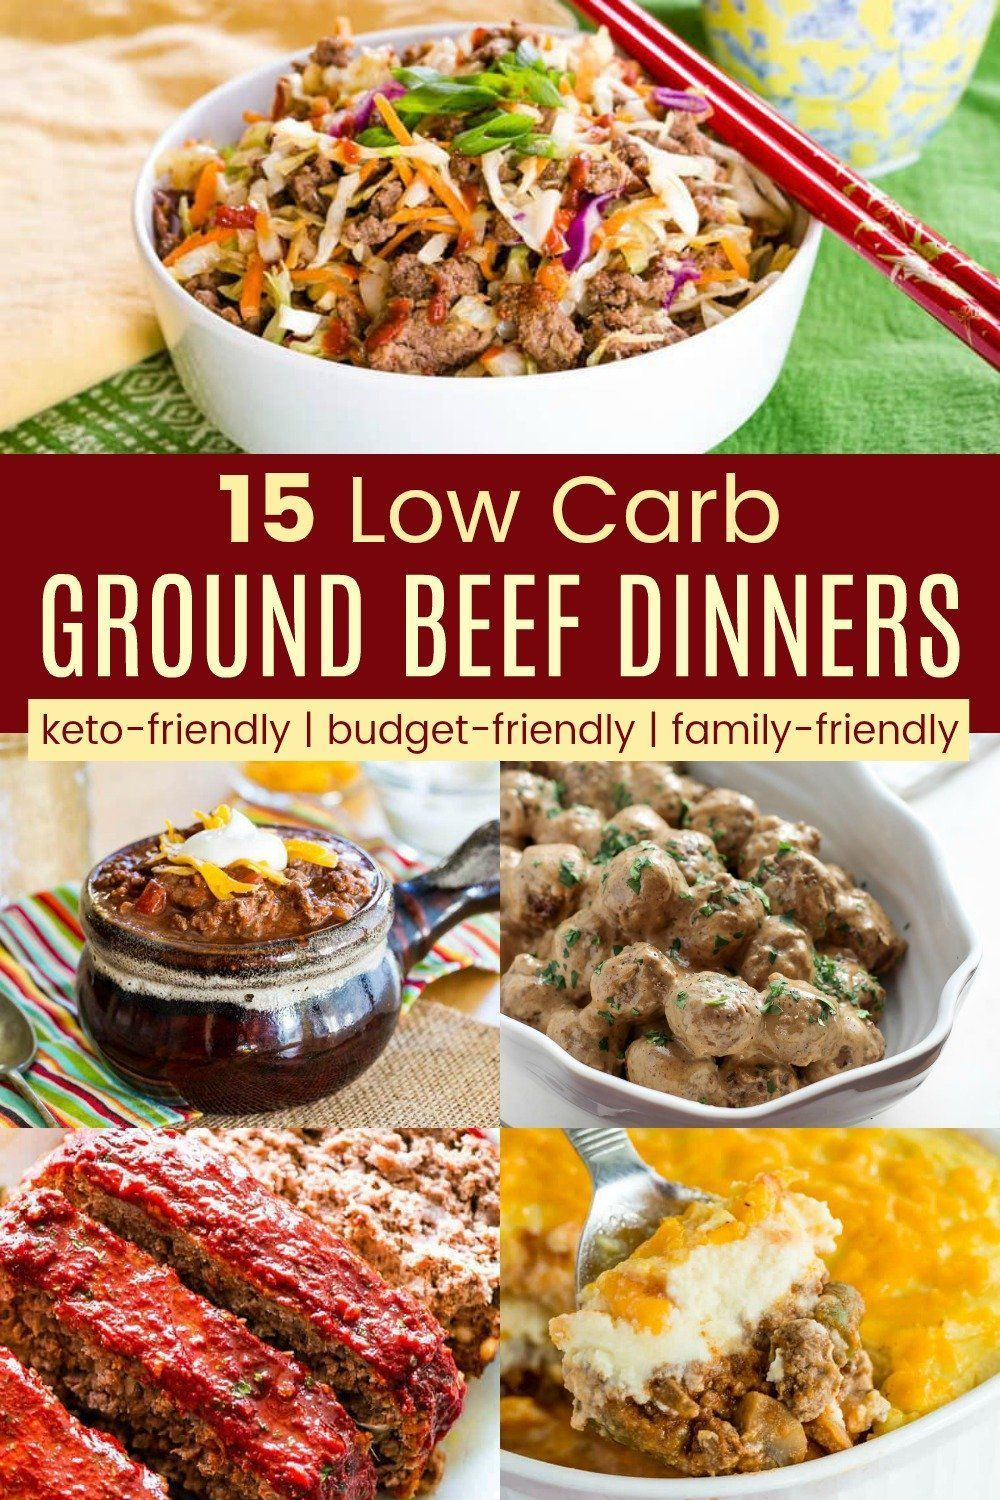 15 Best Keto Ground Beef Dinner Recipes Easy Low Carb And Gluten Free Dinners That Are Family Fri Dinner With Ground Beef Beef Dinner Beef Recipes For Dinner